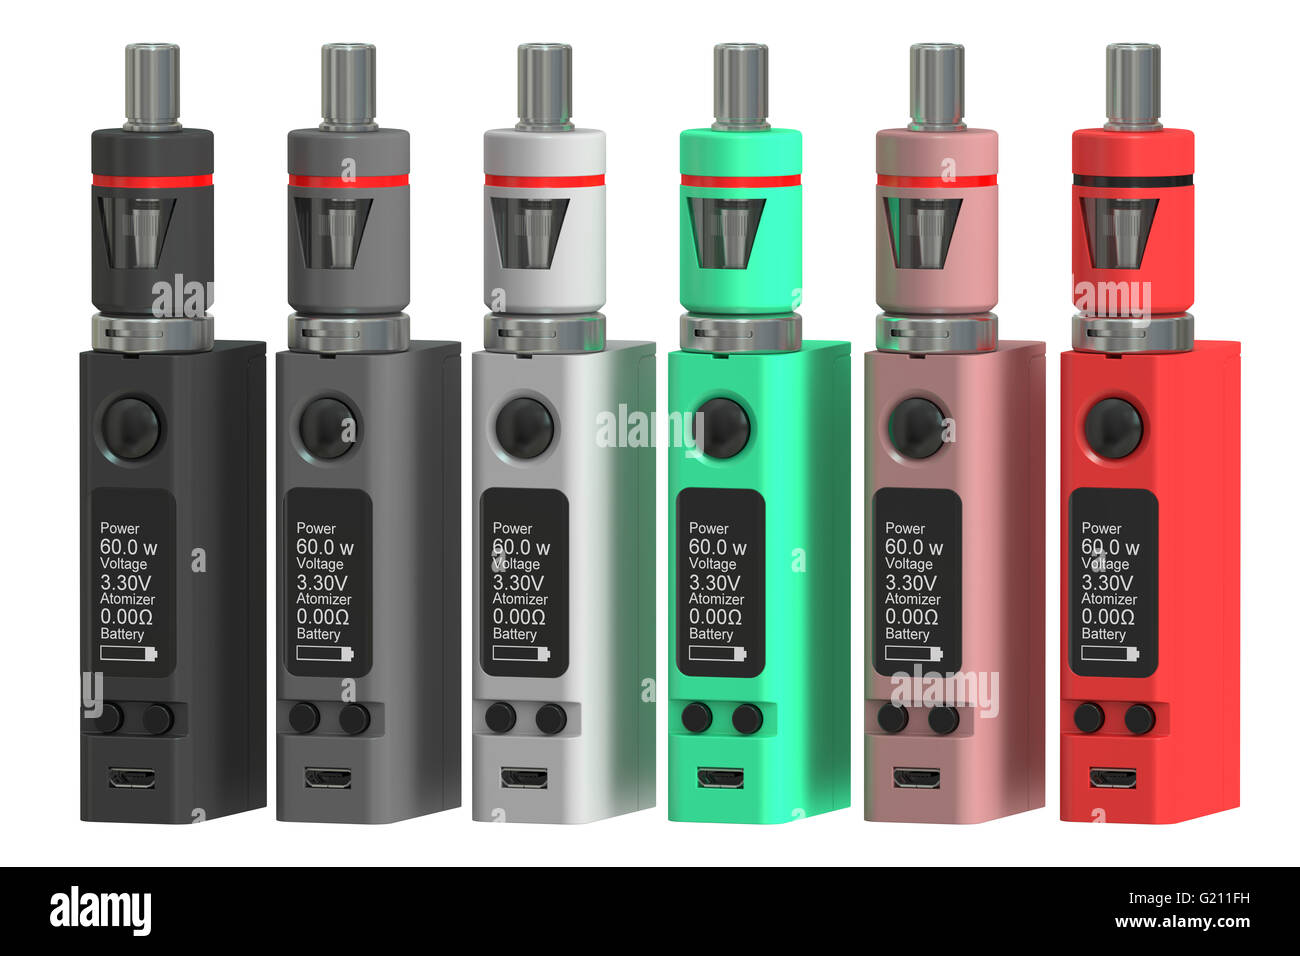 Box Mods Electronic cigarettes, 3D rendering isolated on white background - Stock Image